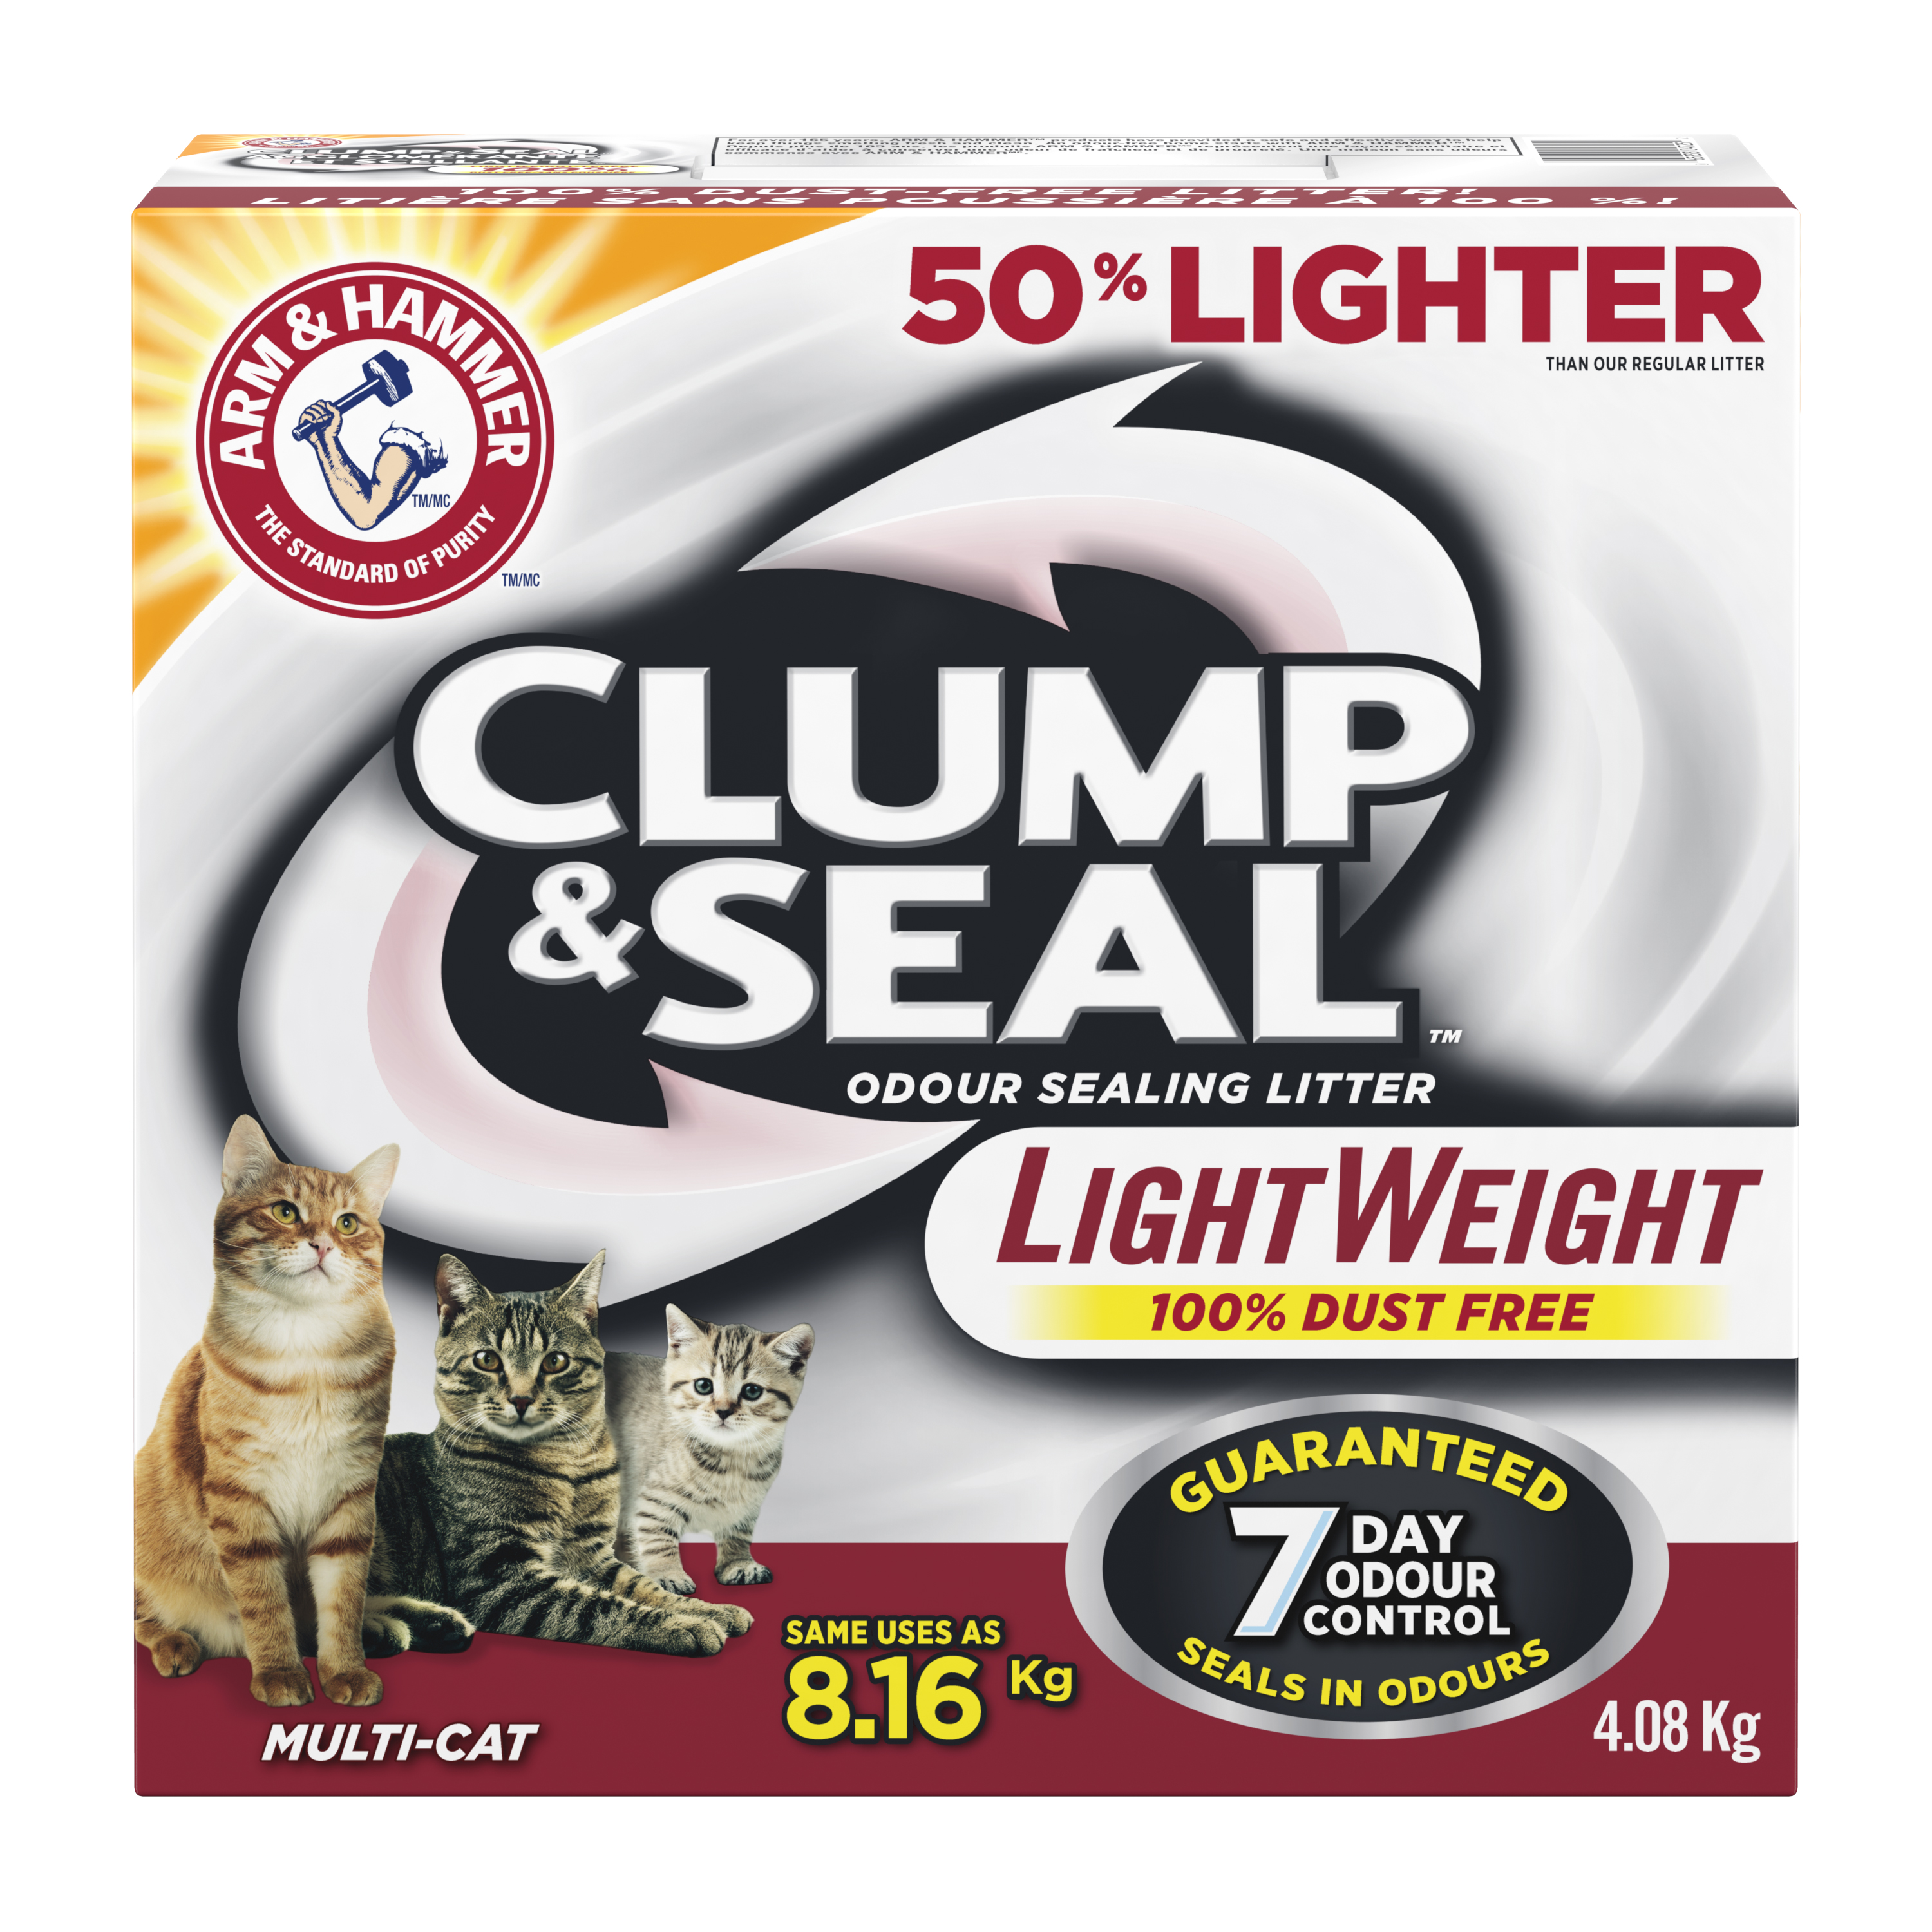 Clump & Seal™ Lightweight Odour Sealing Clumping Litter, Multi-Cat